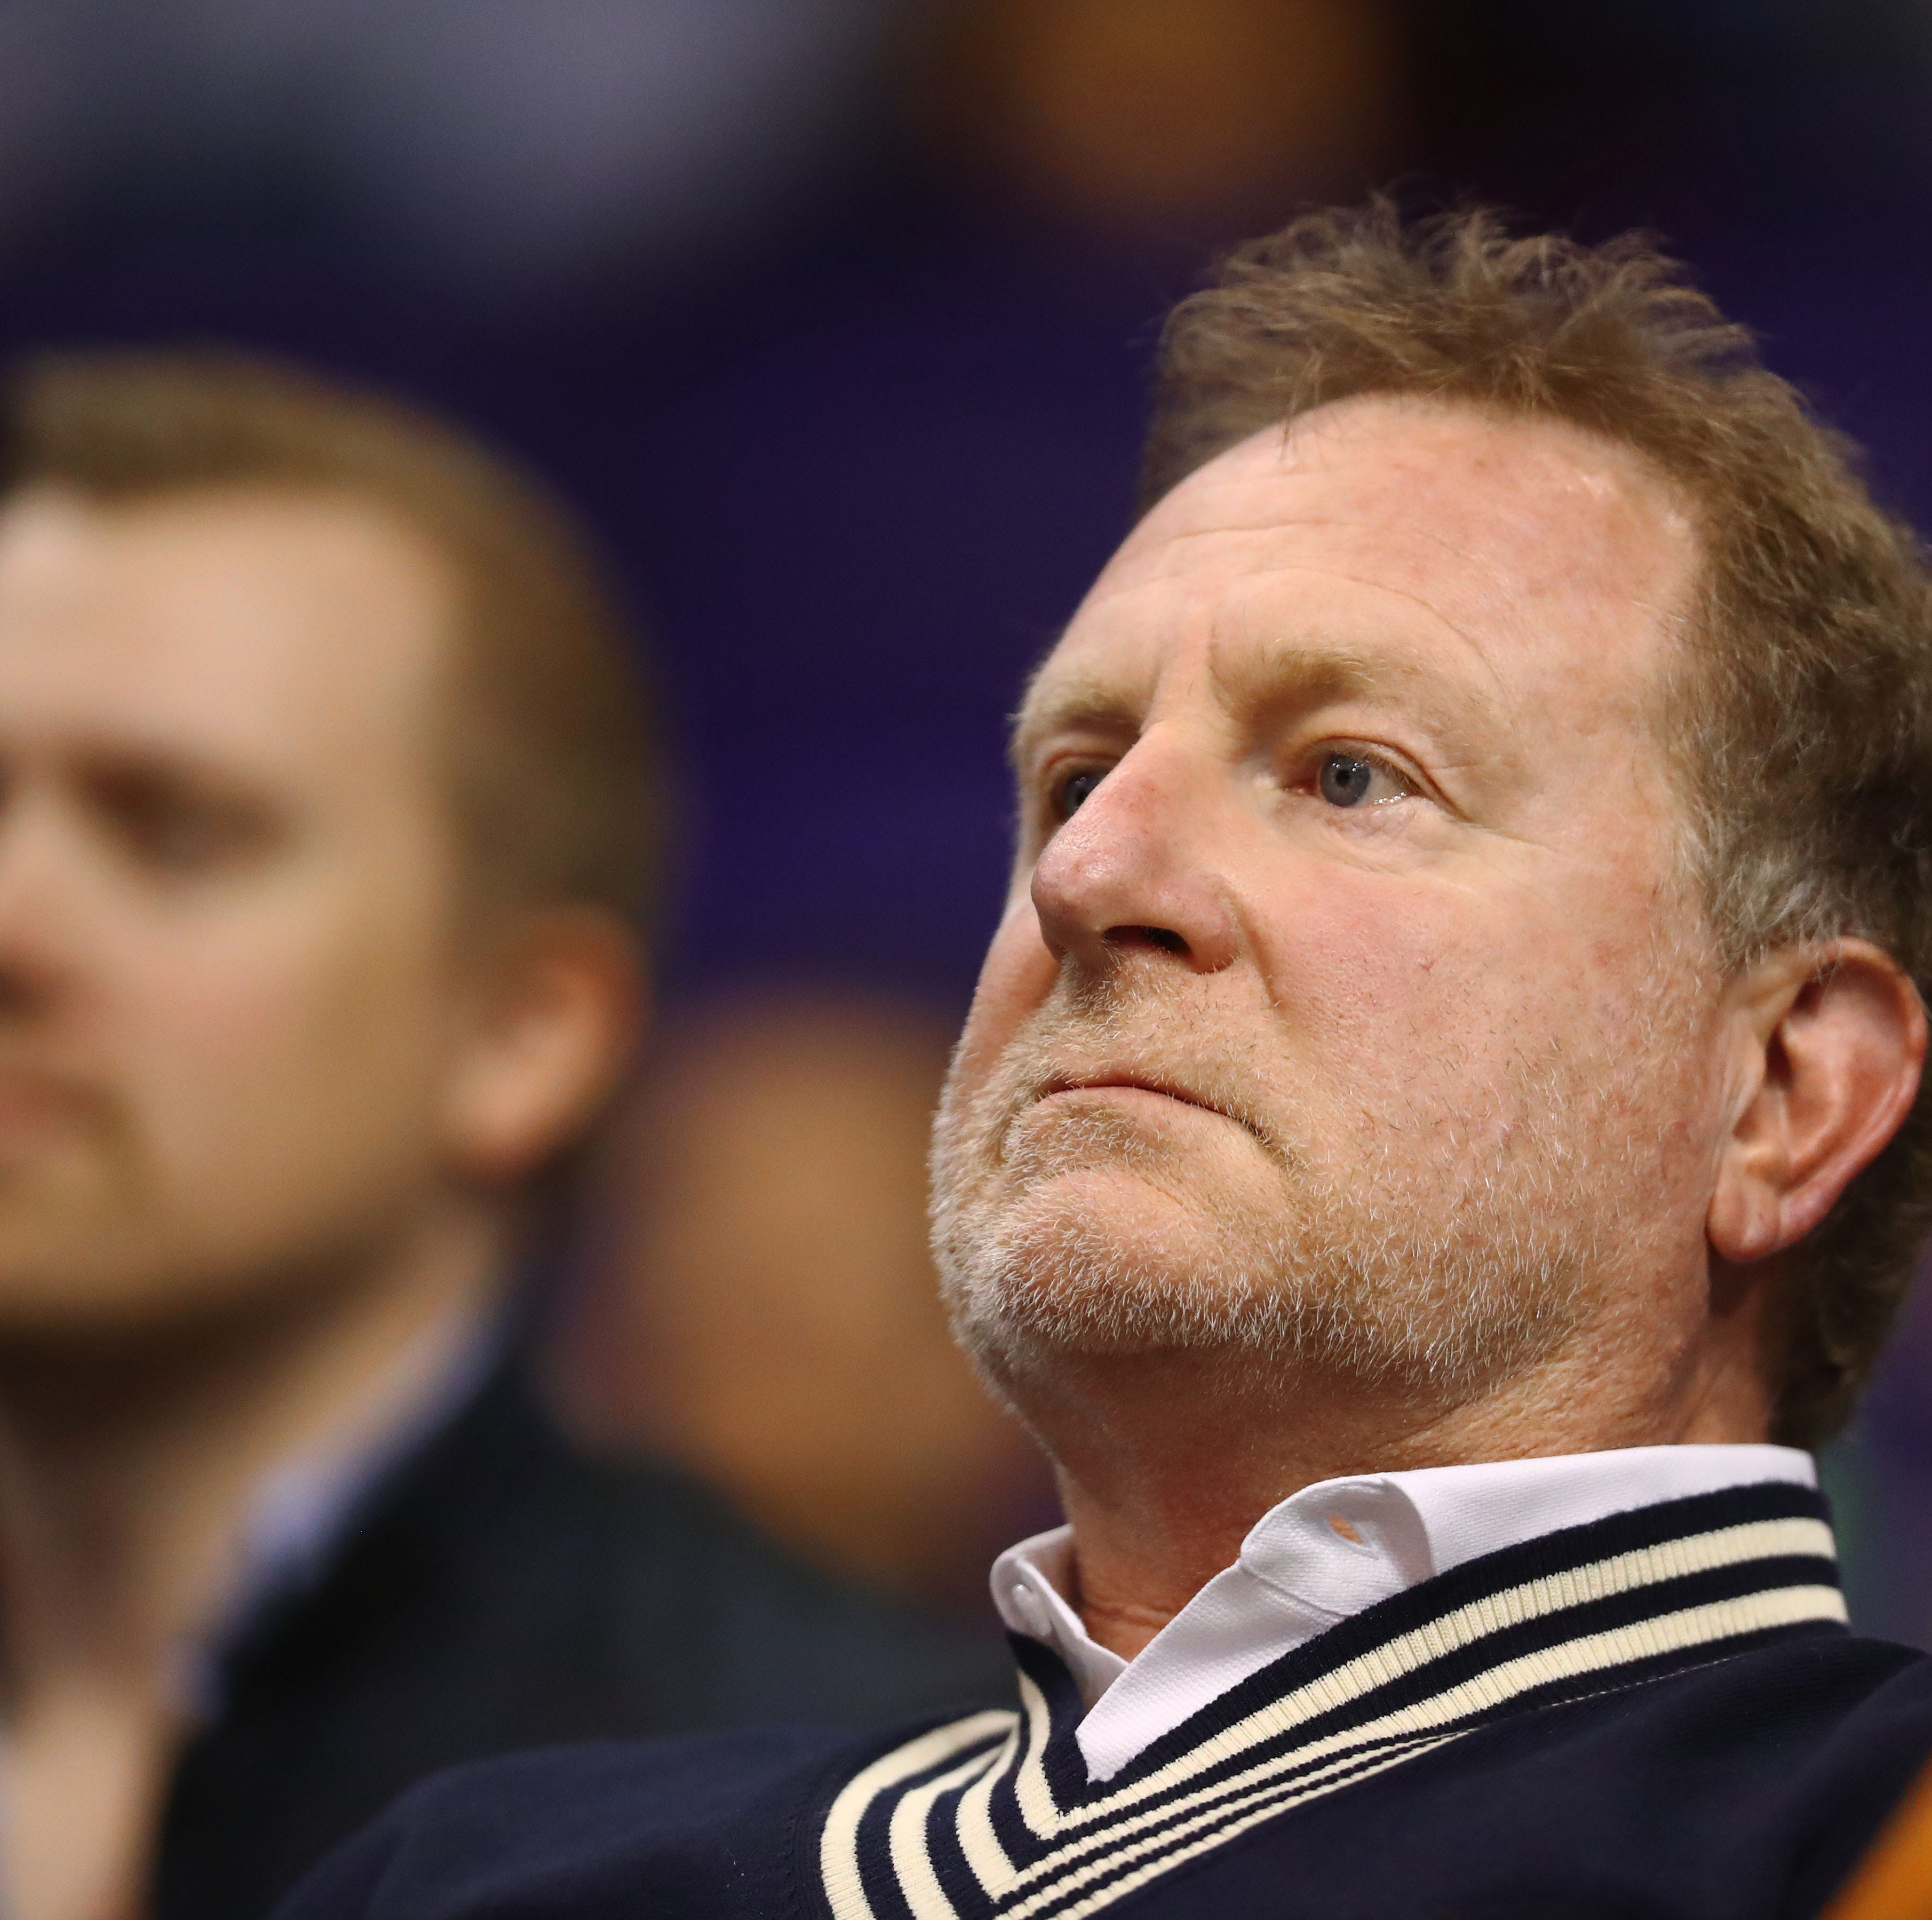 Robert Sarver has apparently threatened to move the Phoenix Suns to Seattle or Las Vegas